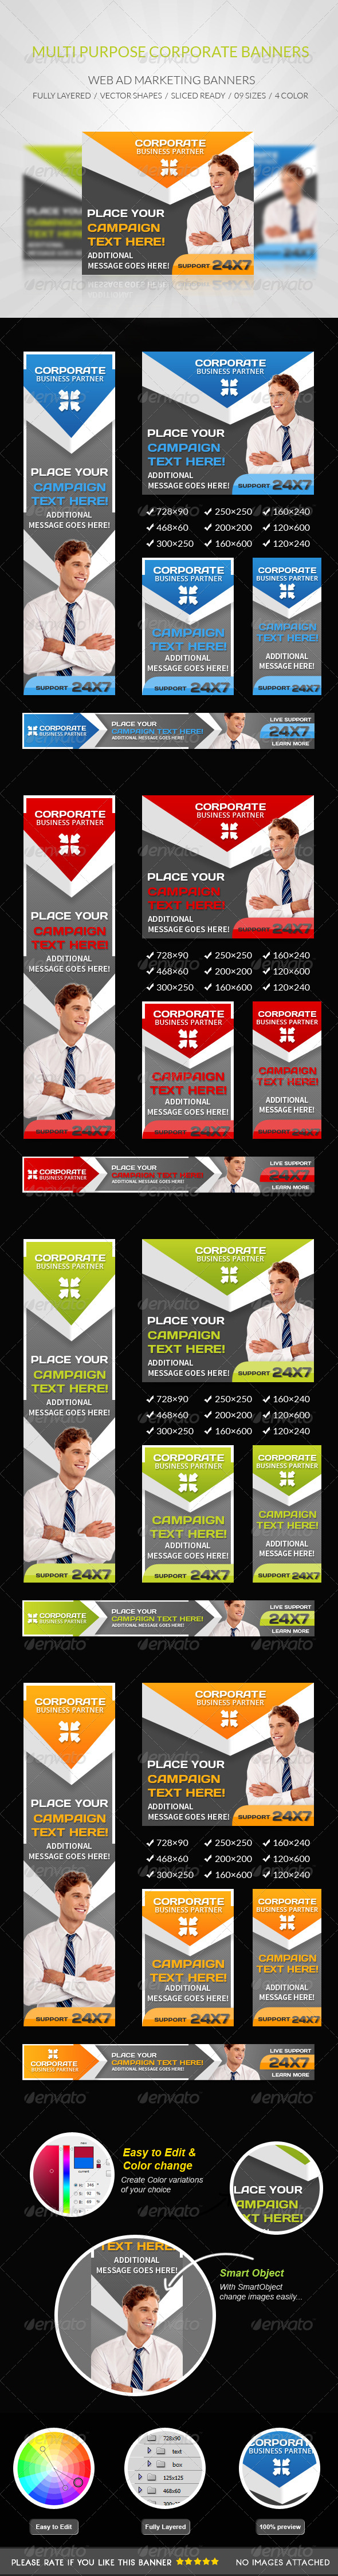 GraphicRiver Multipurpose Corporate Banners 7890297